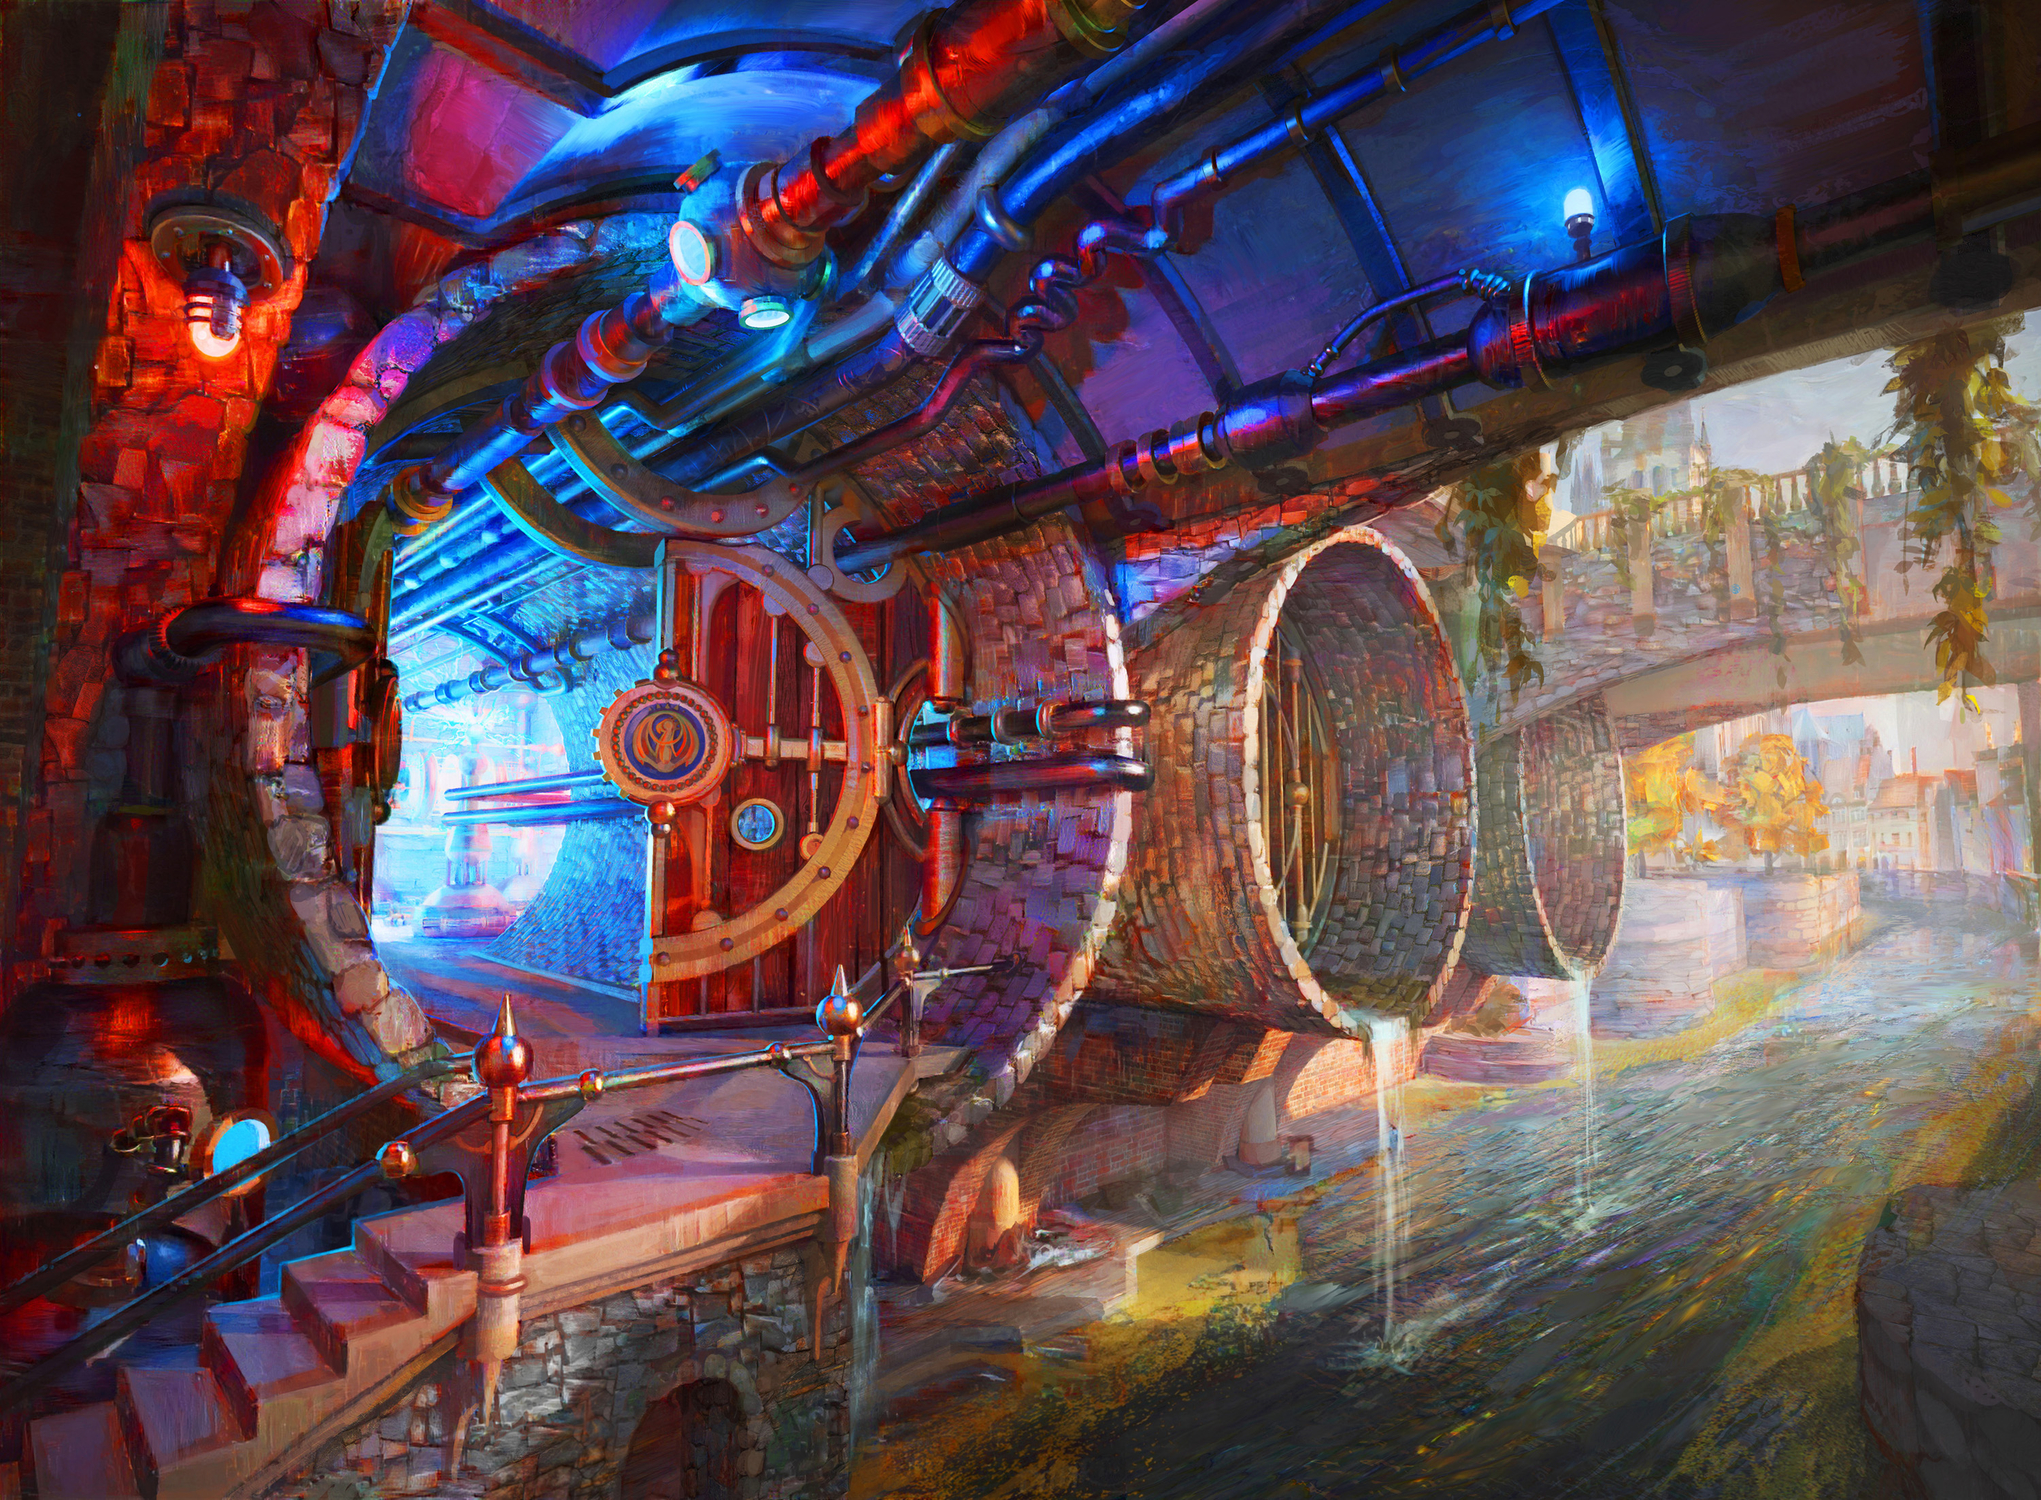 Izzet Guildgate (Secret Entrance) Artwork by Kirsten Zirngibl